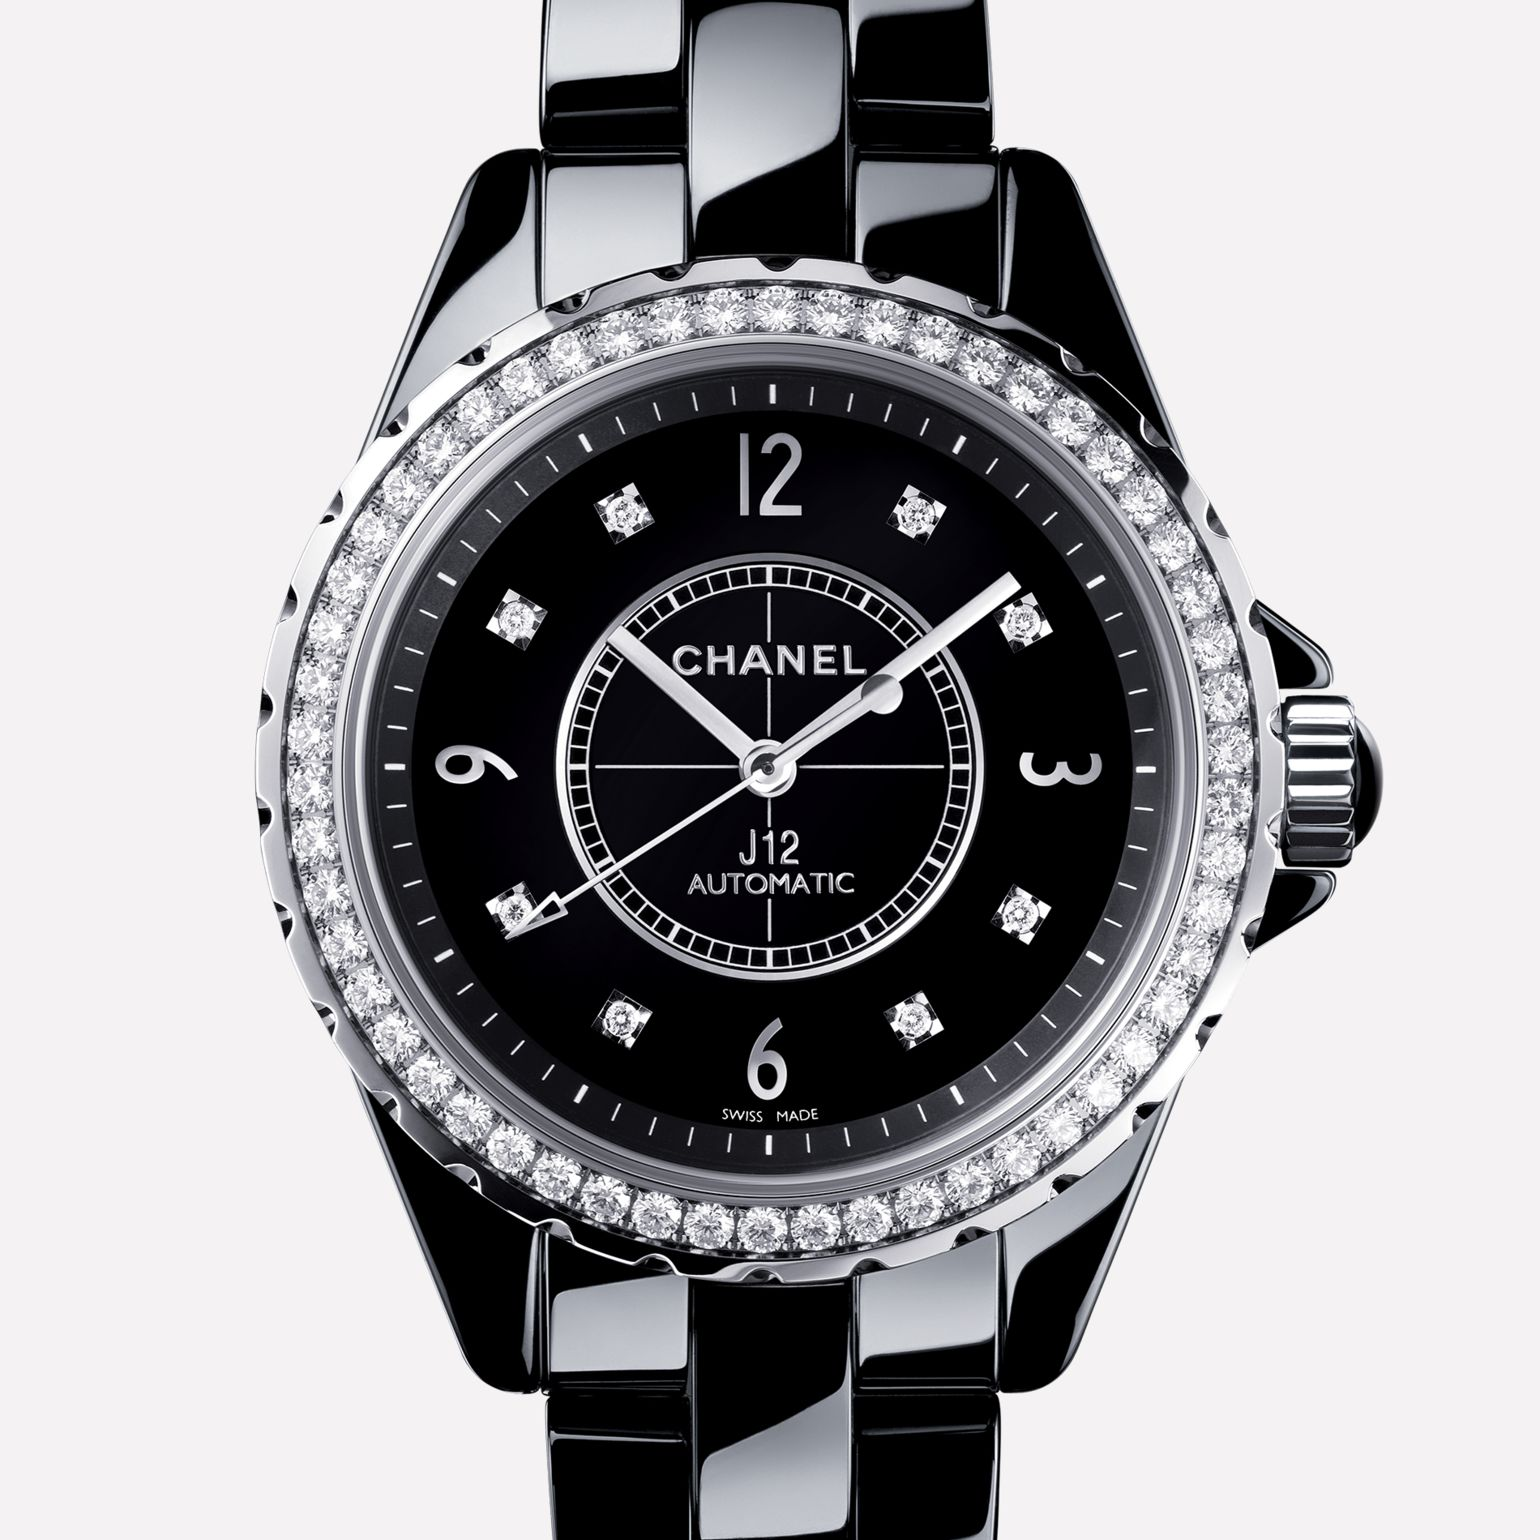 J12 Watch Black ceramic and steel, diamond bezel and indicators